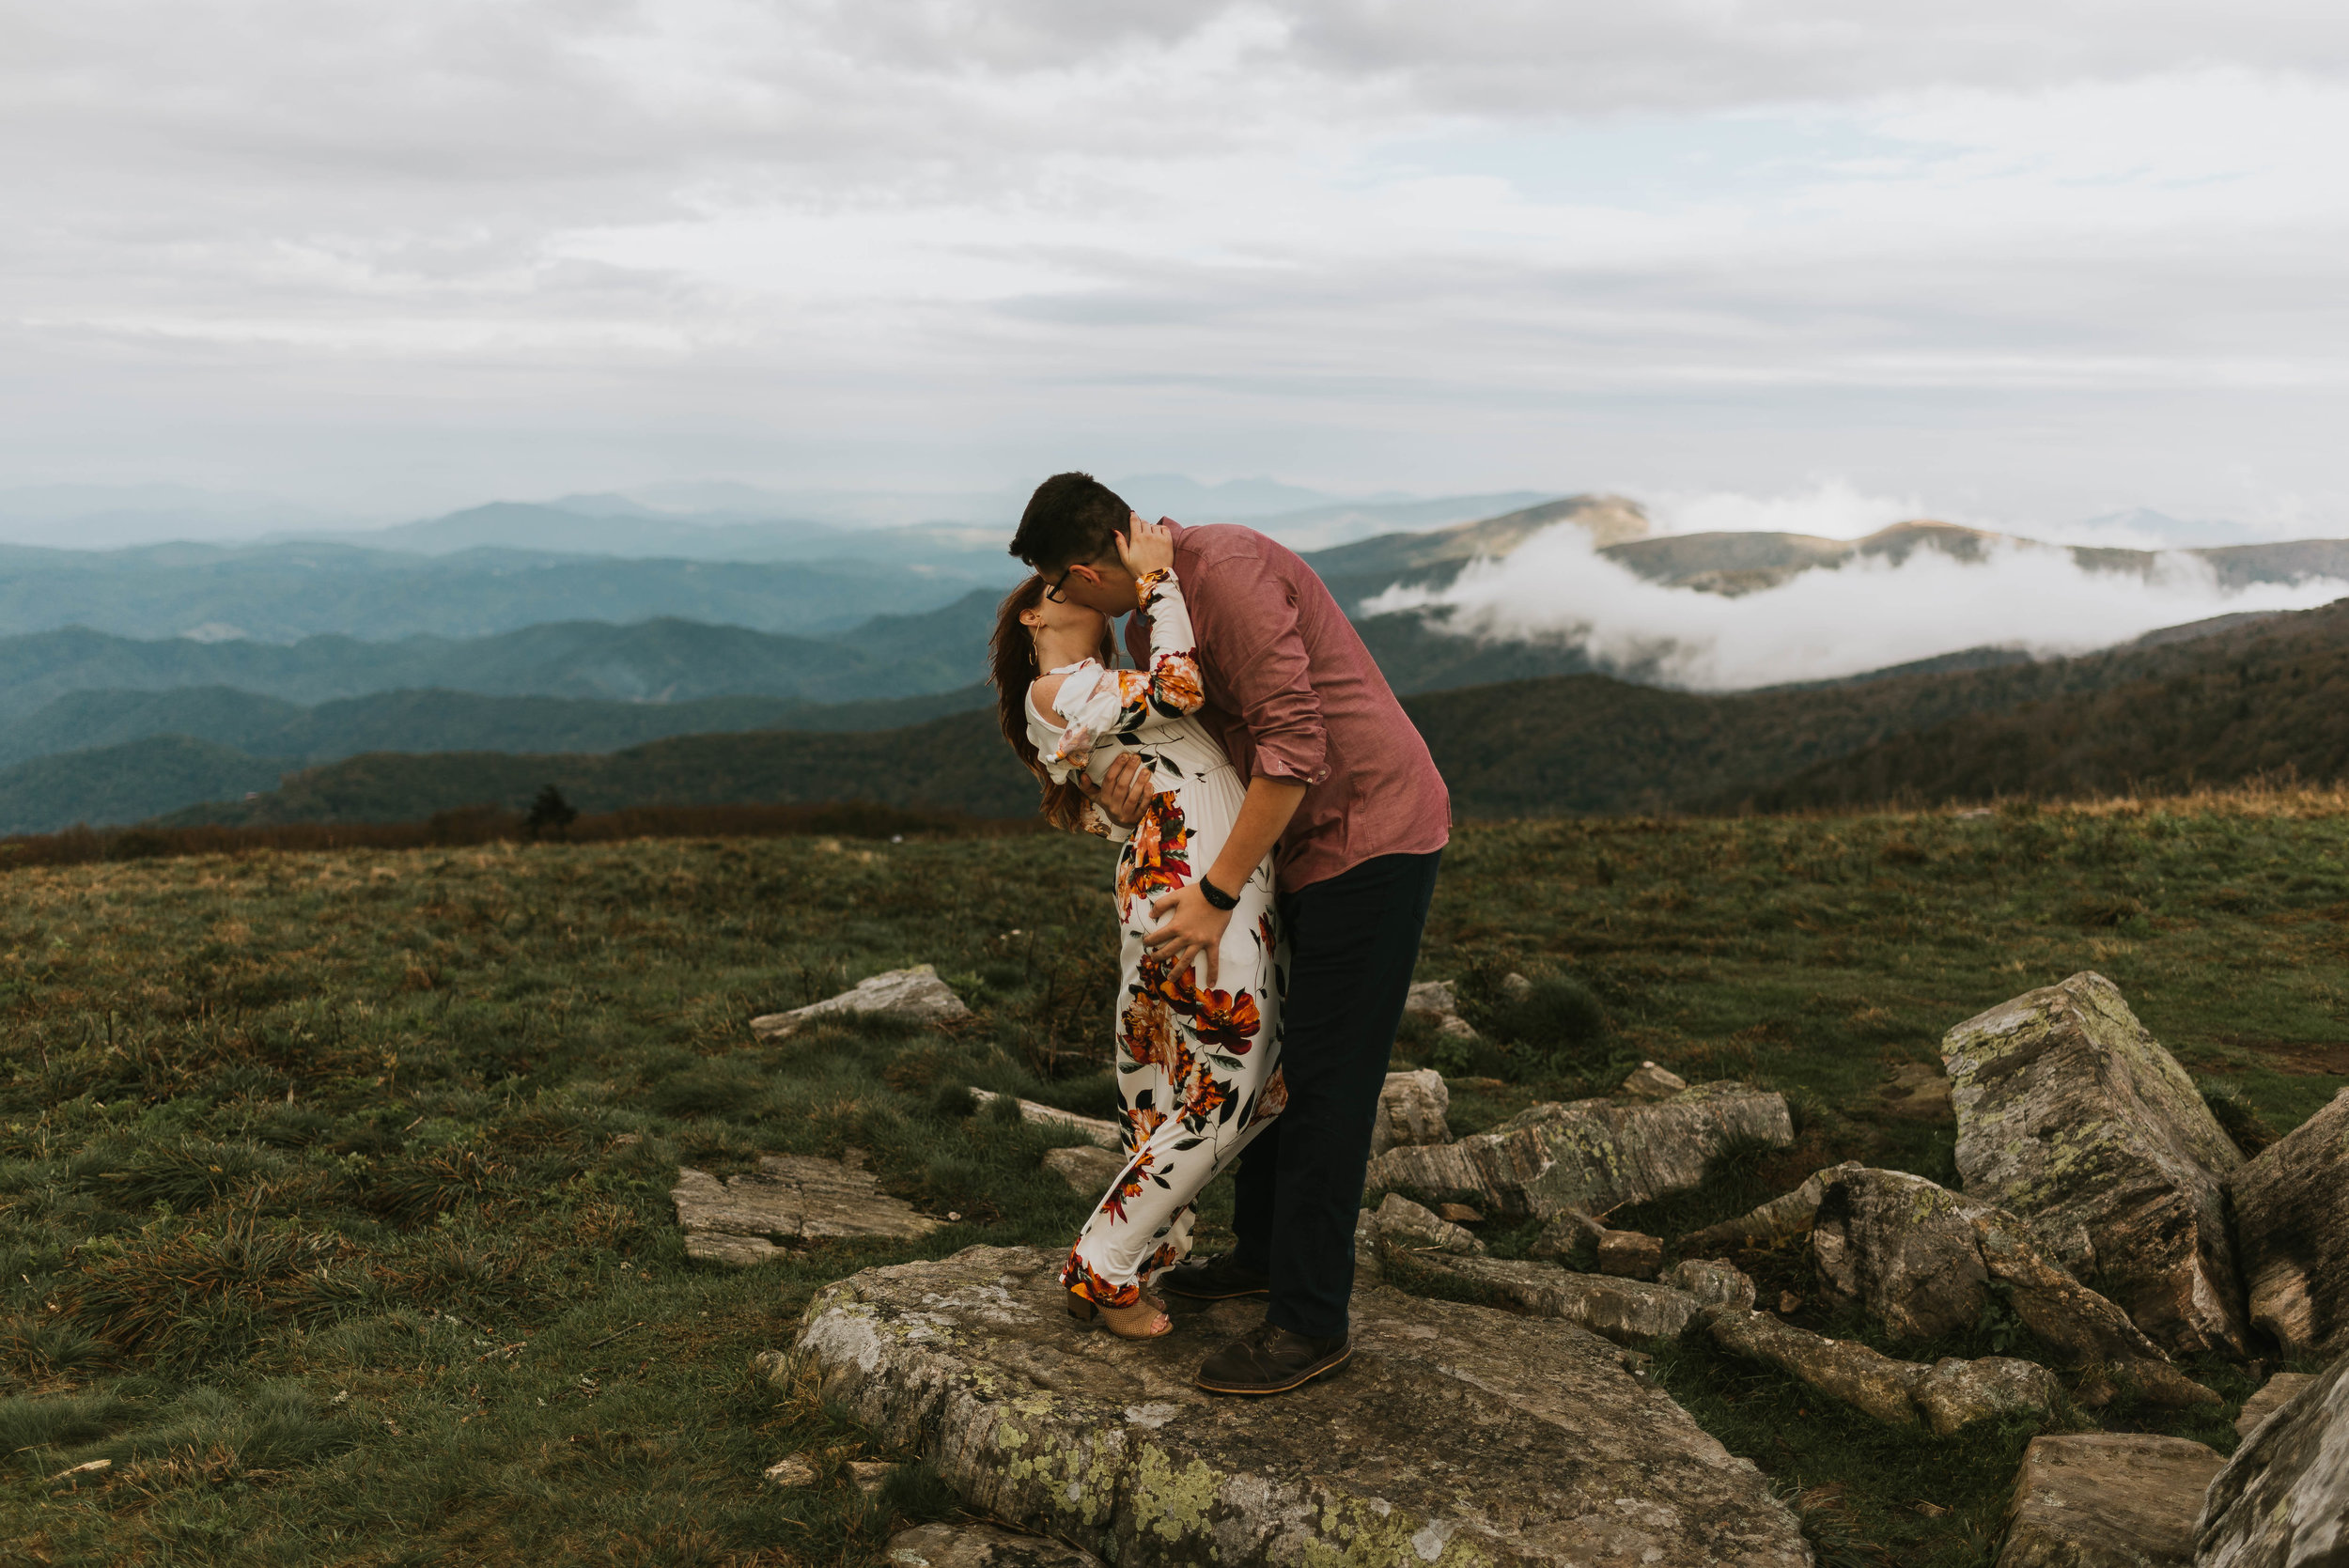 Roan Mountain Engagement Session, Northeast Tennessee Wedding Photography, East Tennessee Wedding Photography, Knoxville, Tennessee Wedding Photography